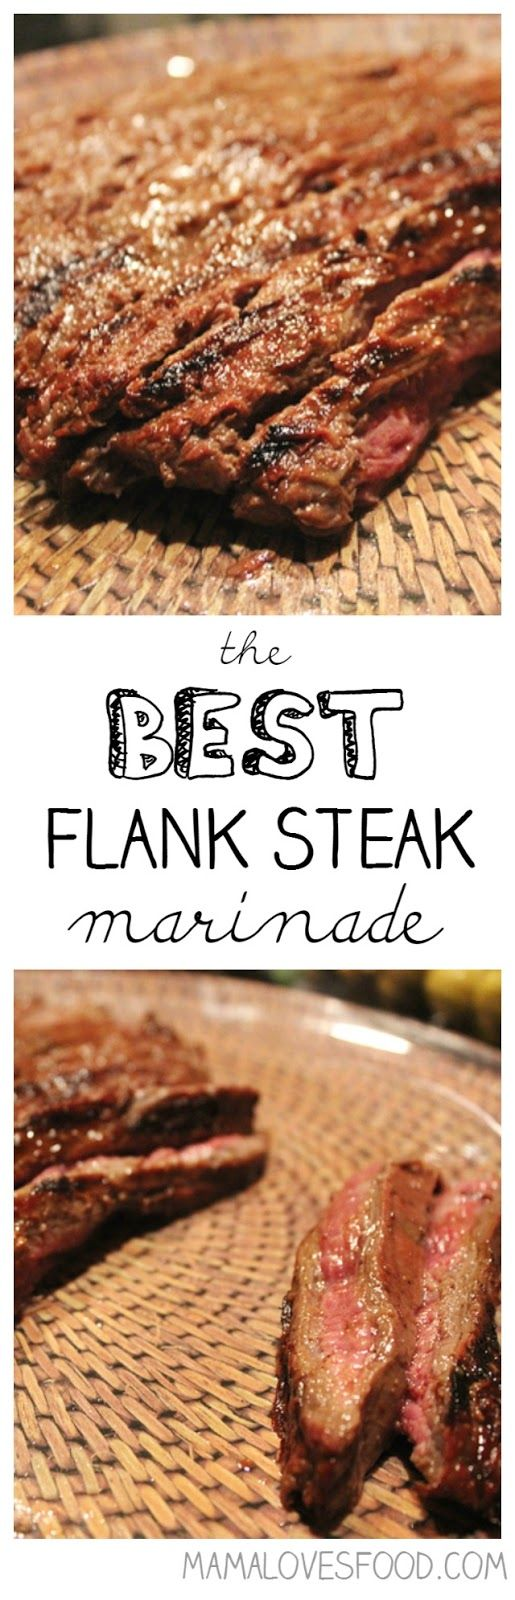 The BEST Flank Steak Marinade. | Mama Loves Food! | Bloglovin'